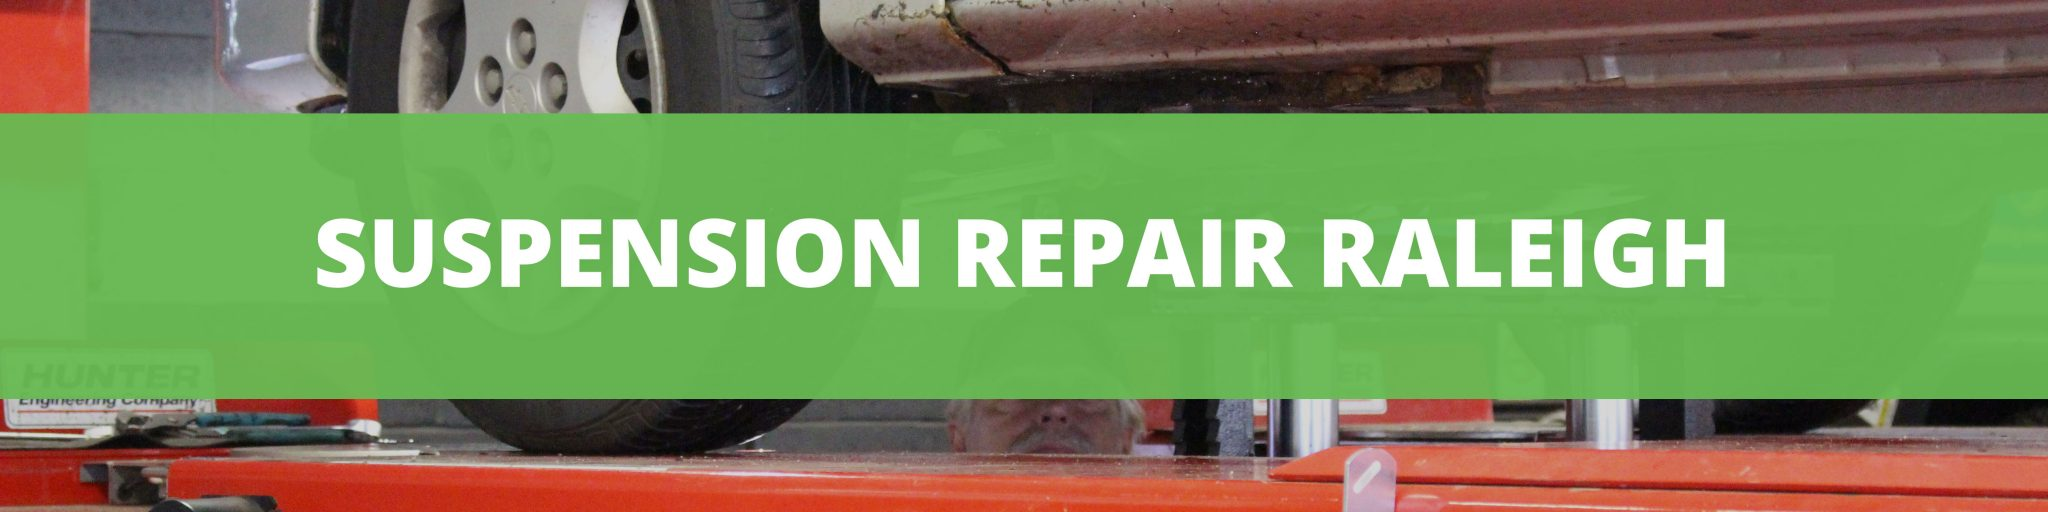 suspension repair raleigh